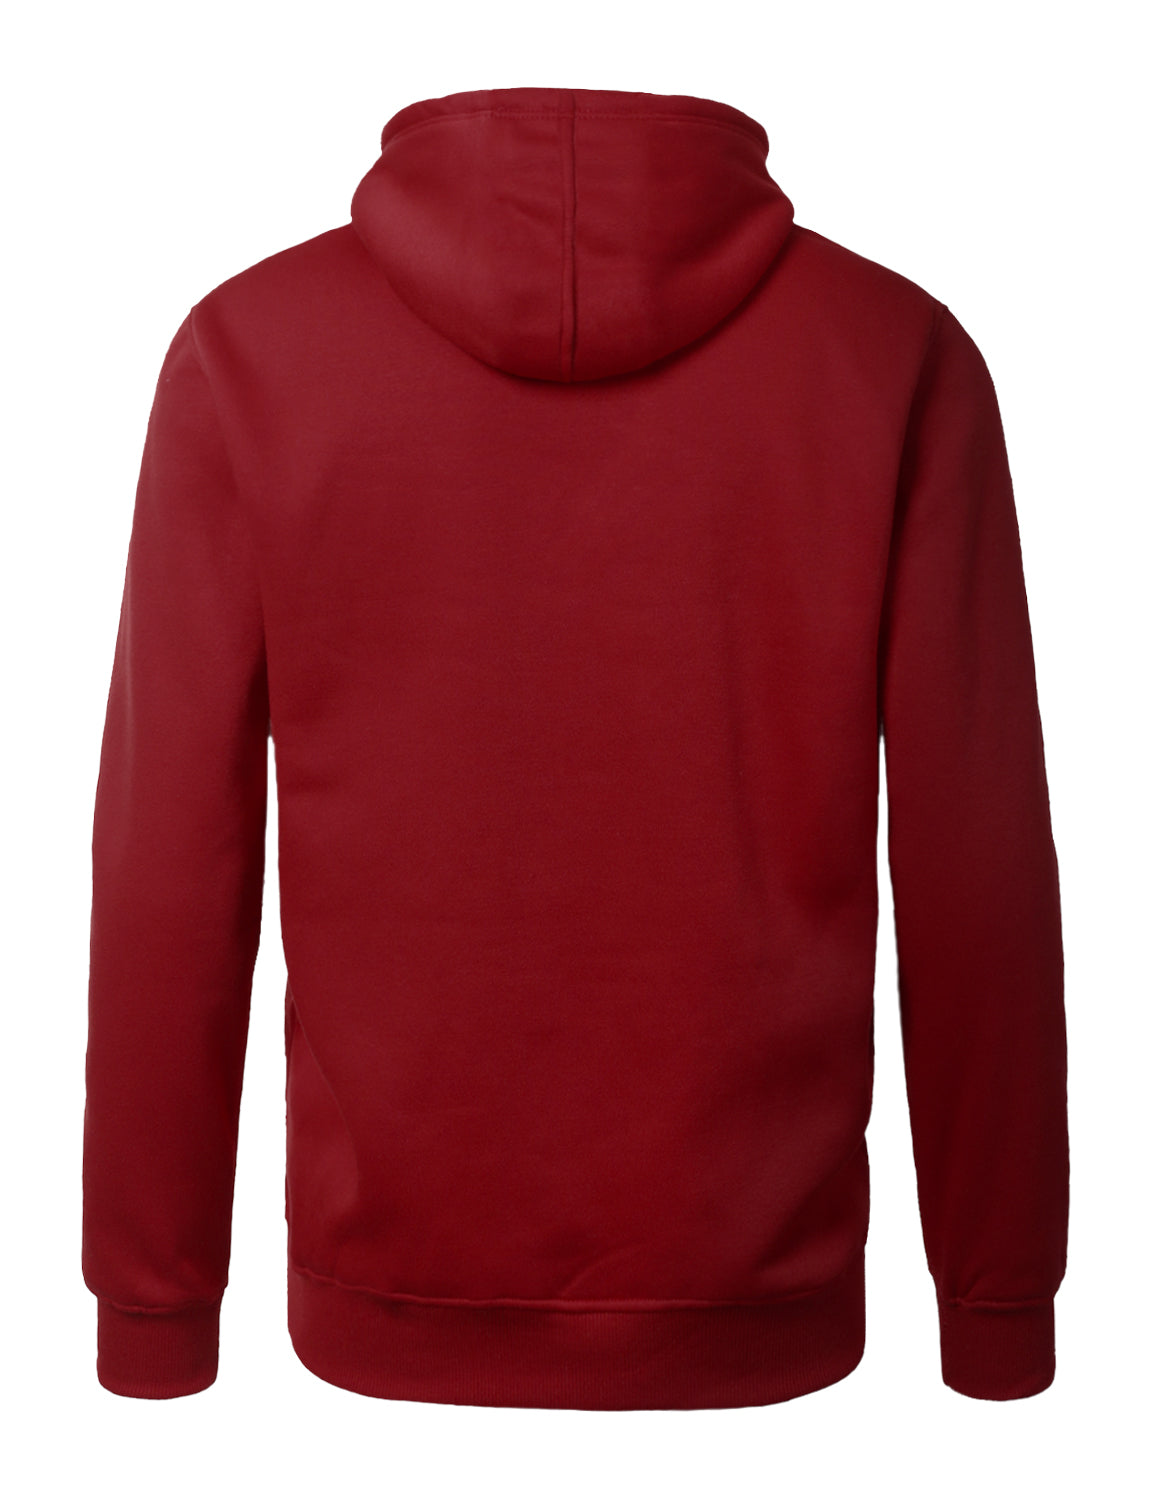 BURGUNDY Lightweight Zip Up Fleece Hoodie - URBANCREWS